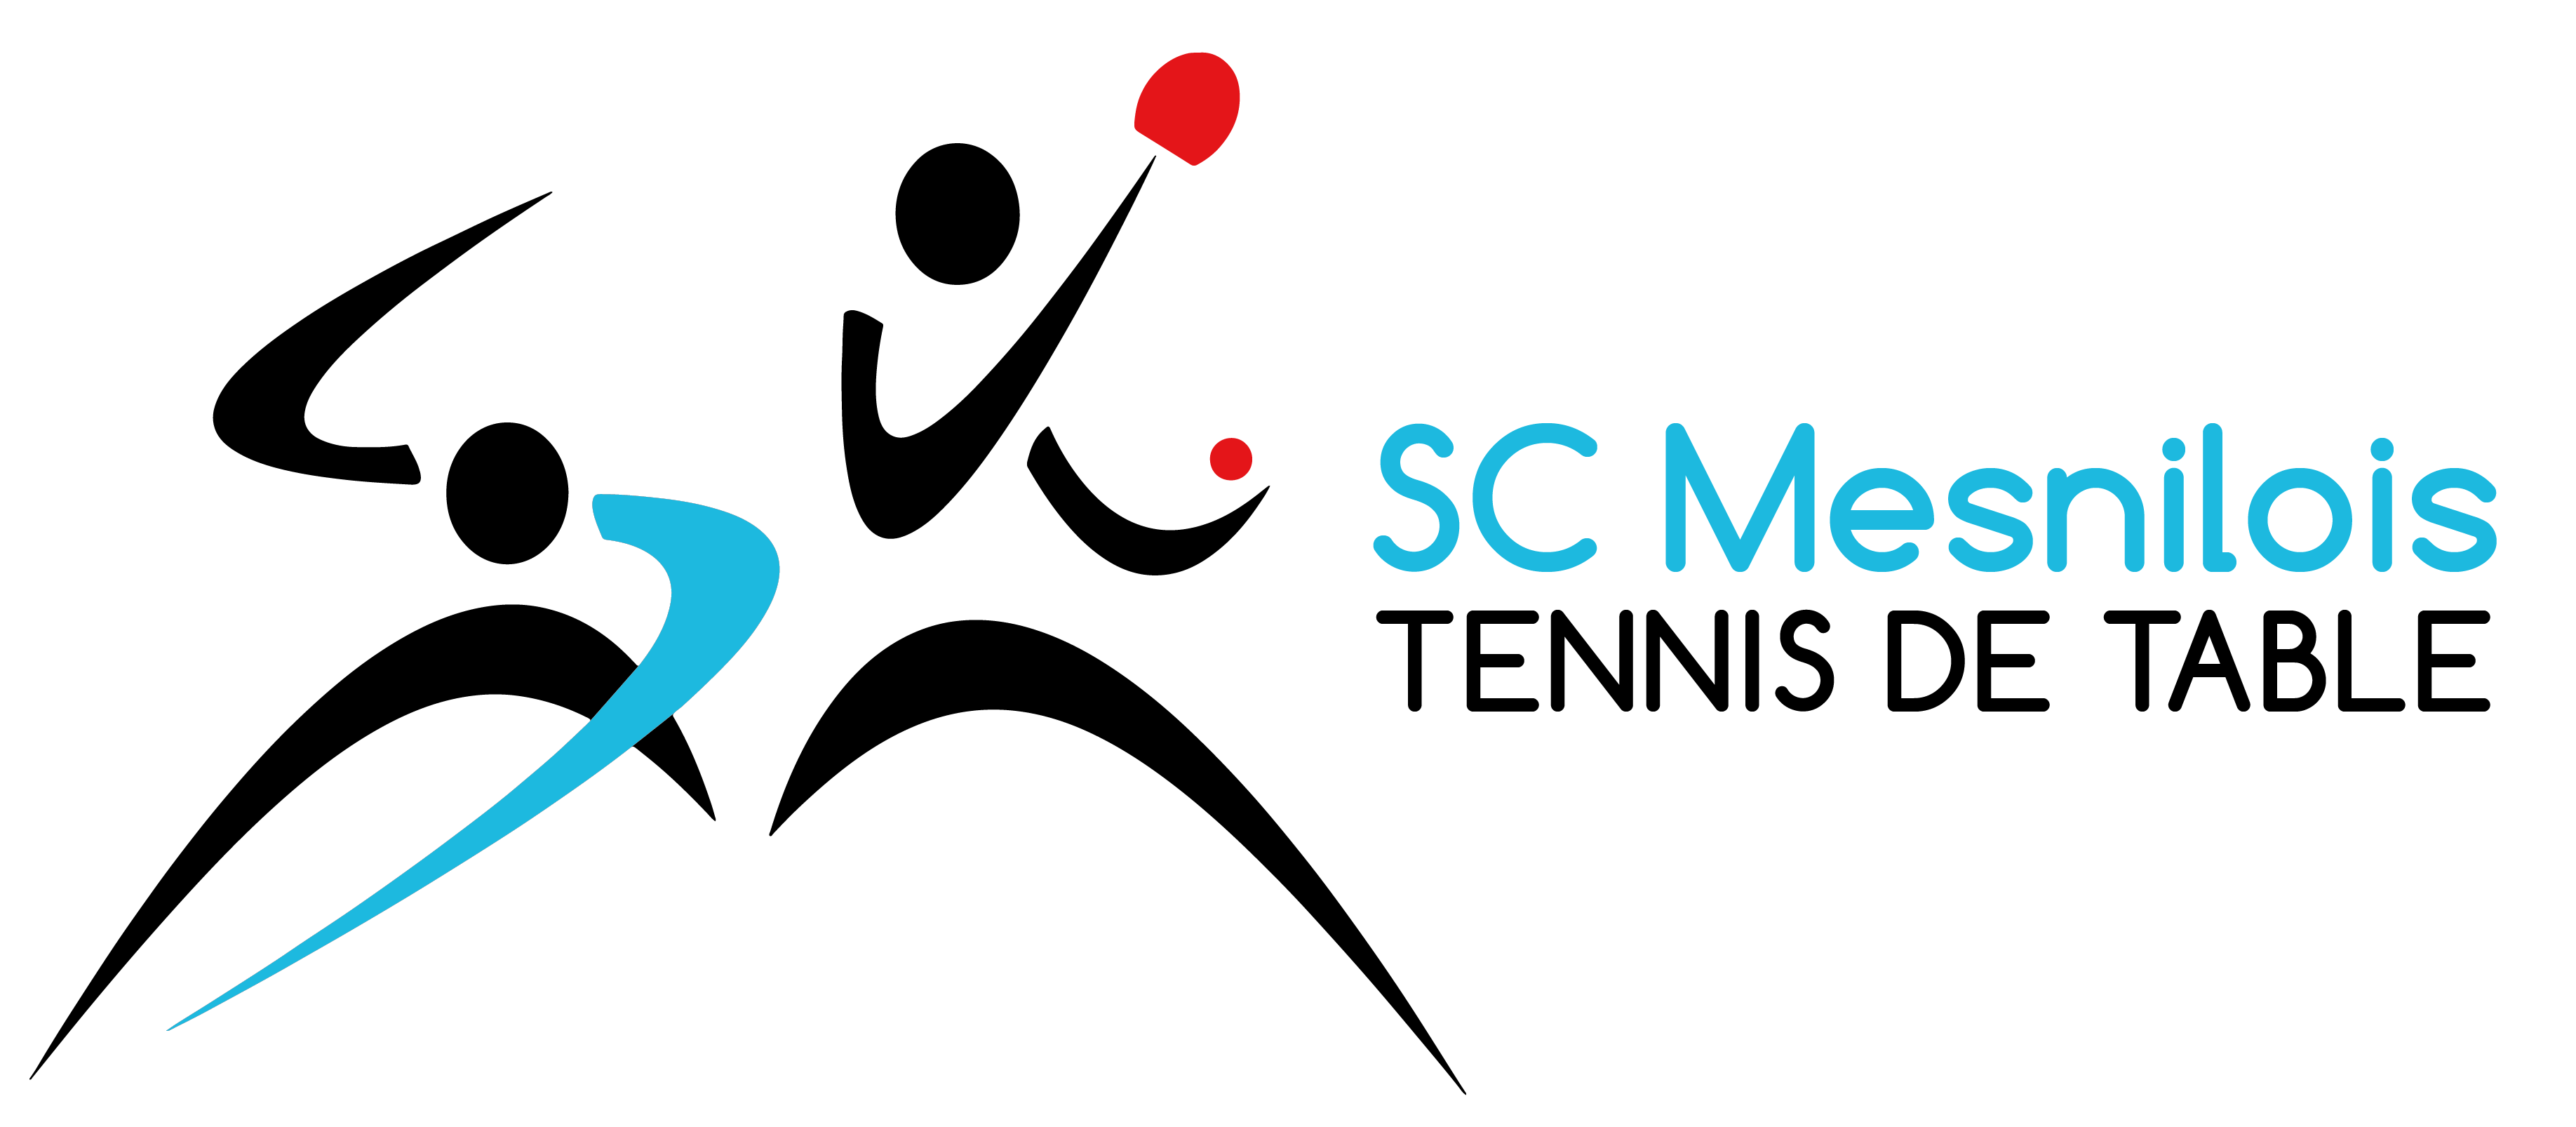 Sc Mesnilois tennis de table